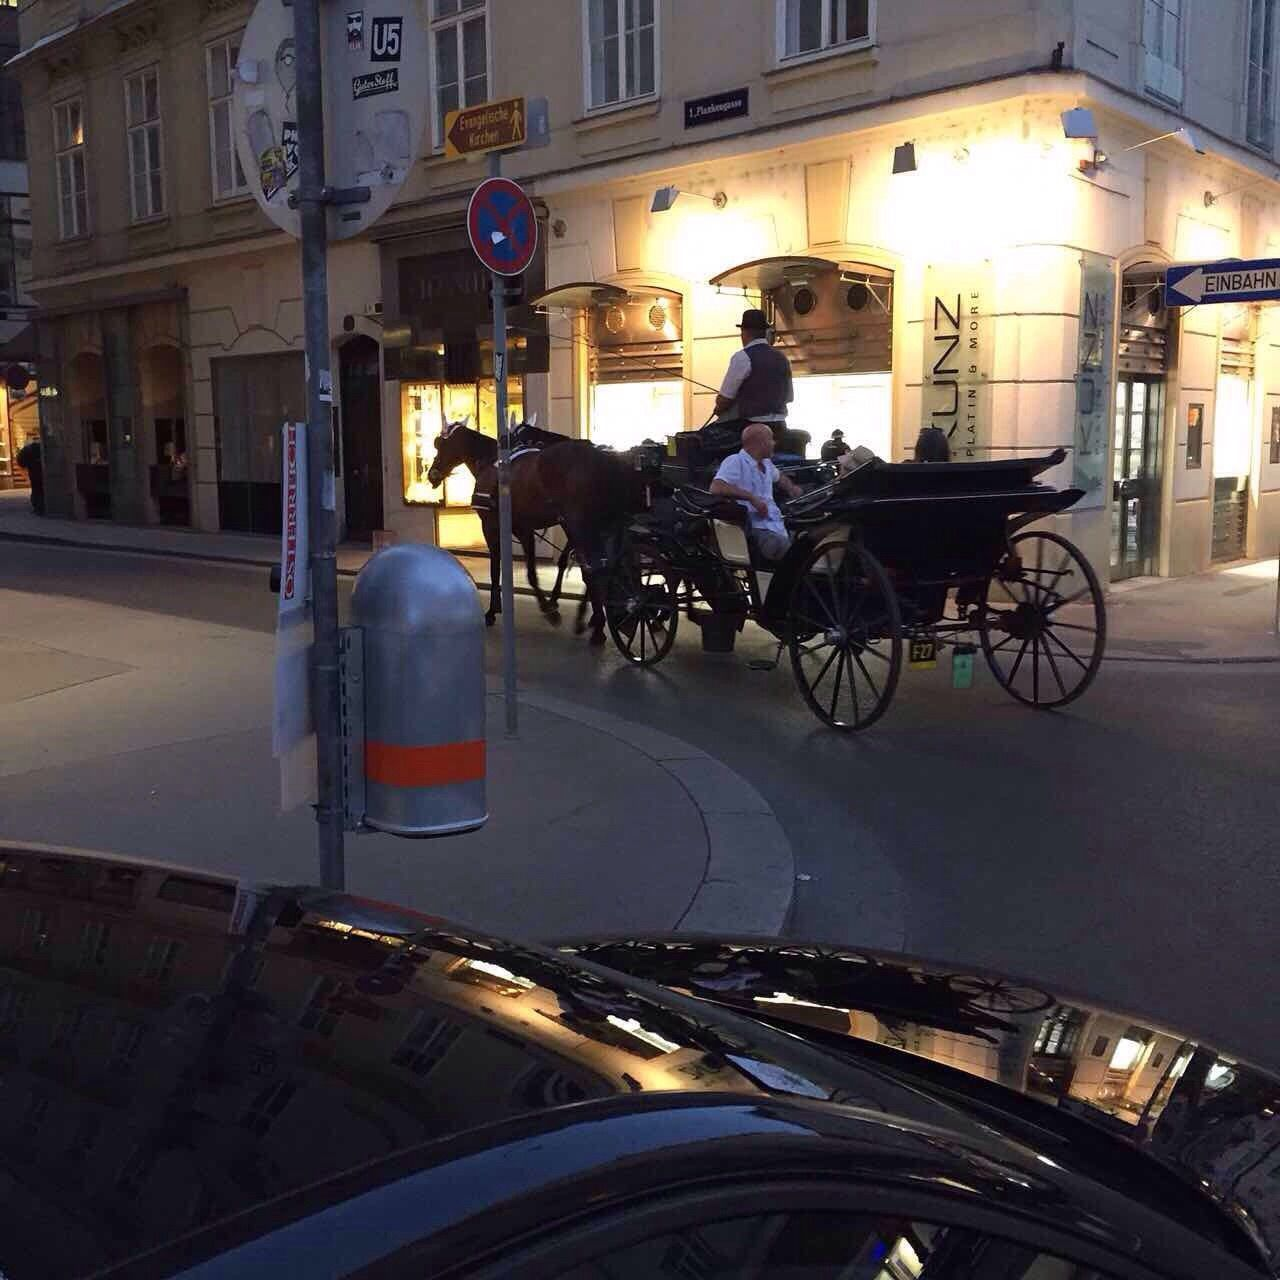 Horses Horses Platz Architecture Buildings Street View Street Photography Sity View Street Carriage People Attraction